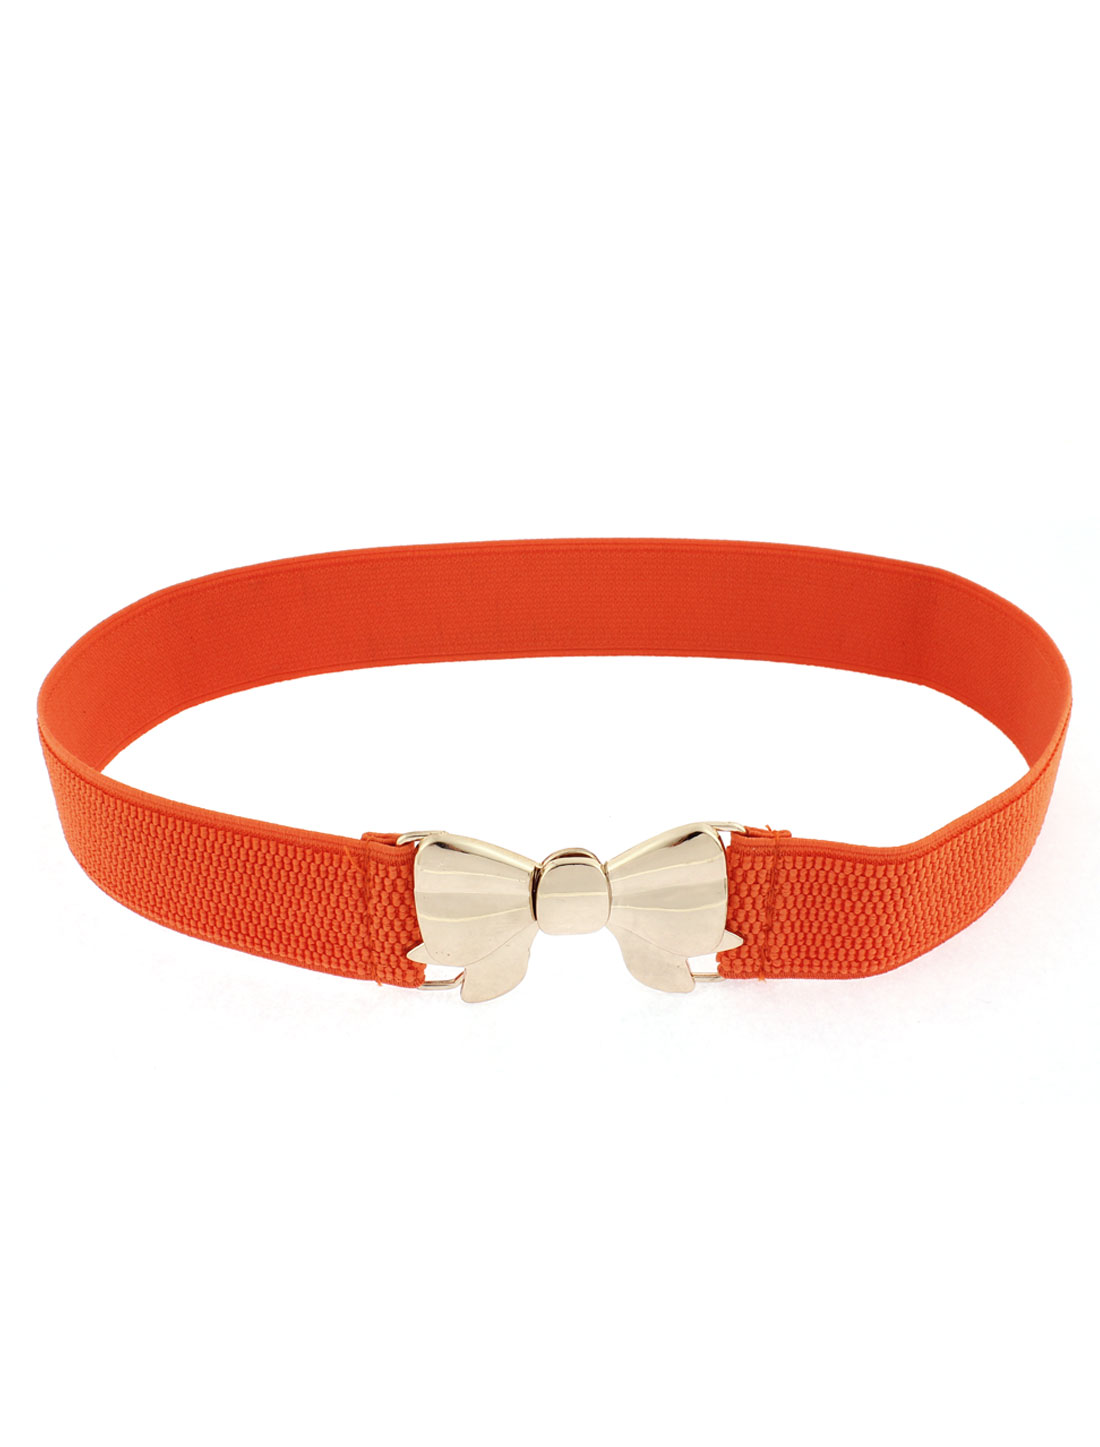 Interlocking Buckle Waist Belt Waistband Orange for Women